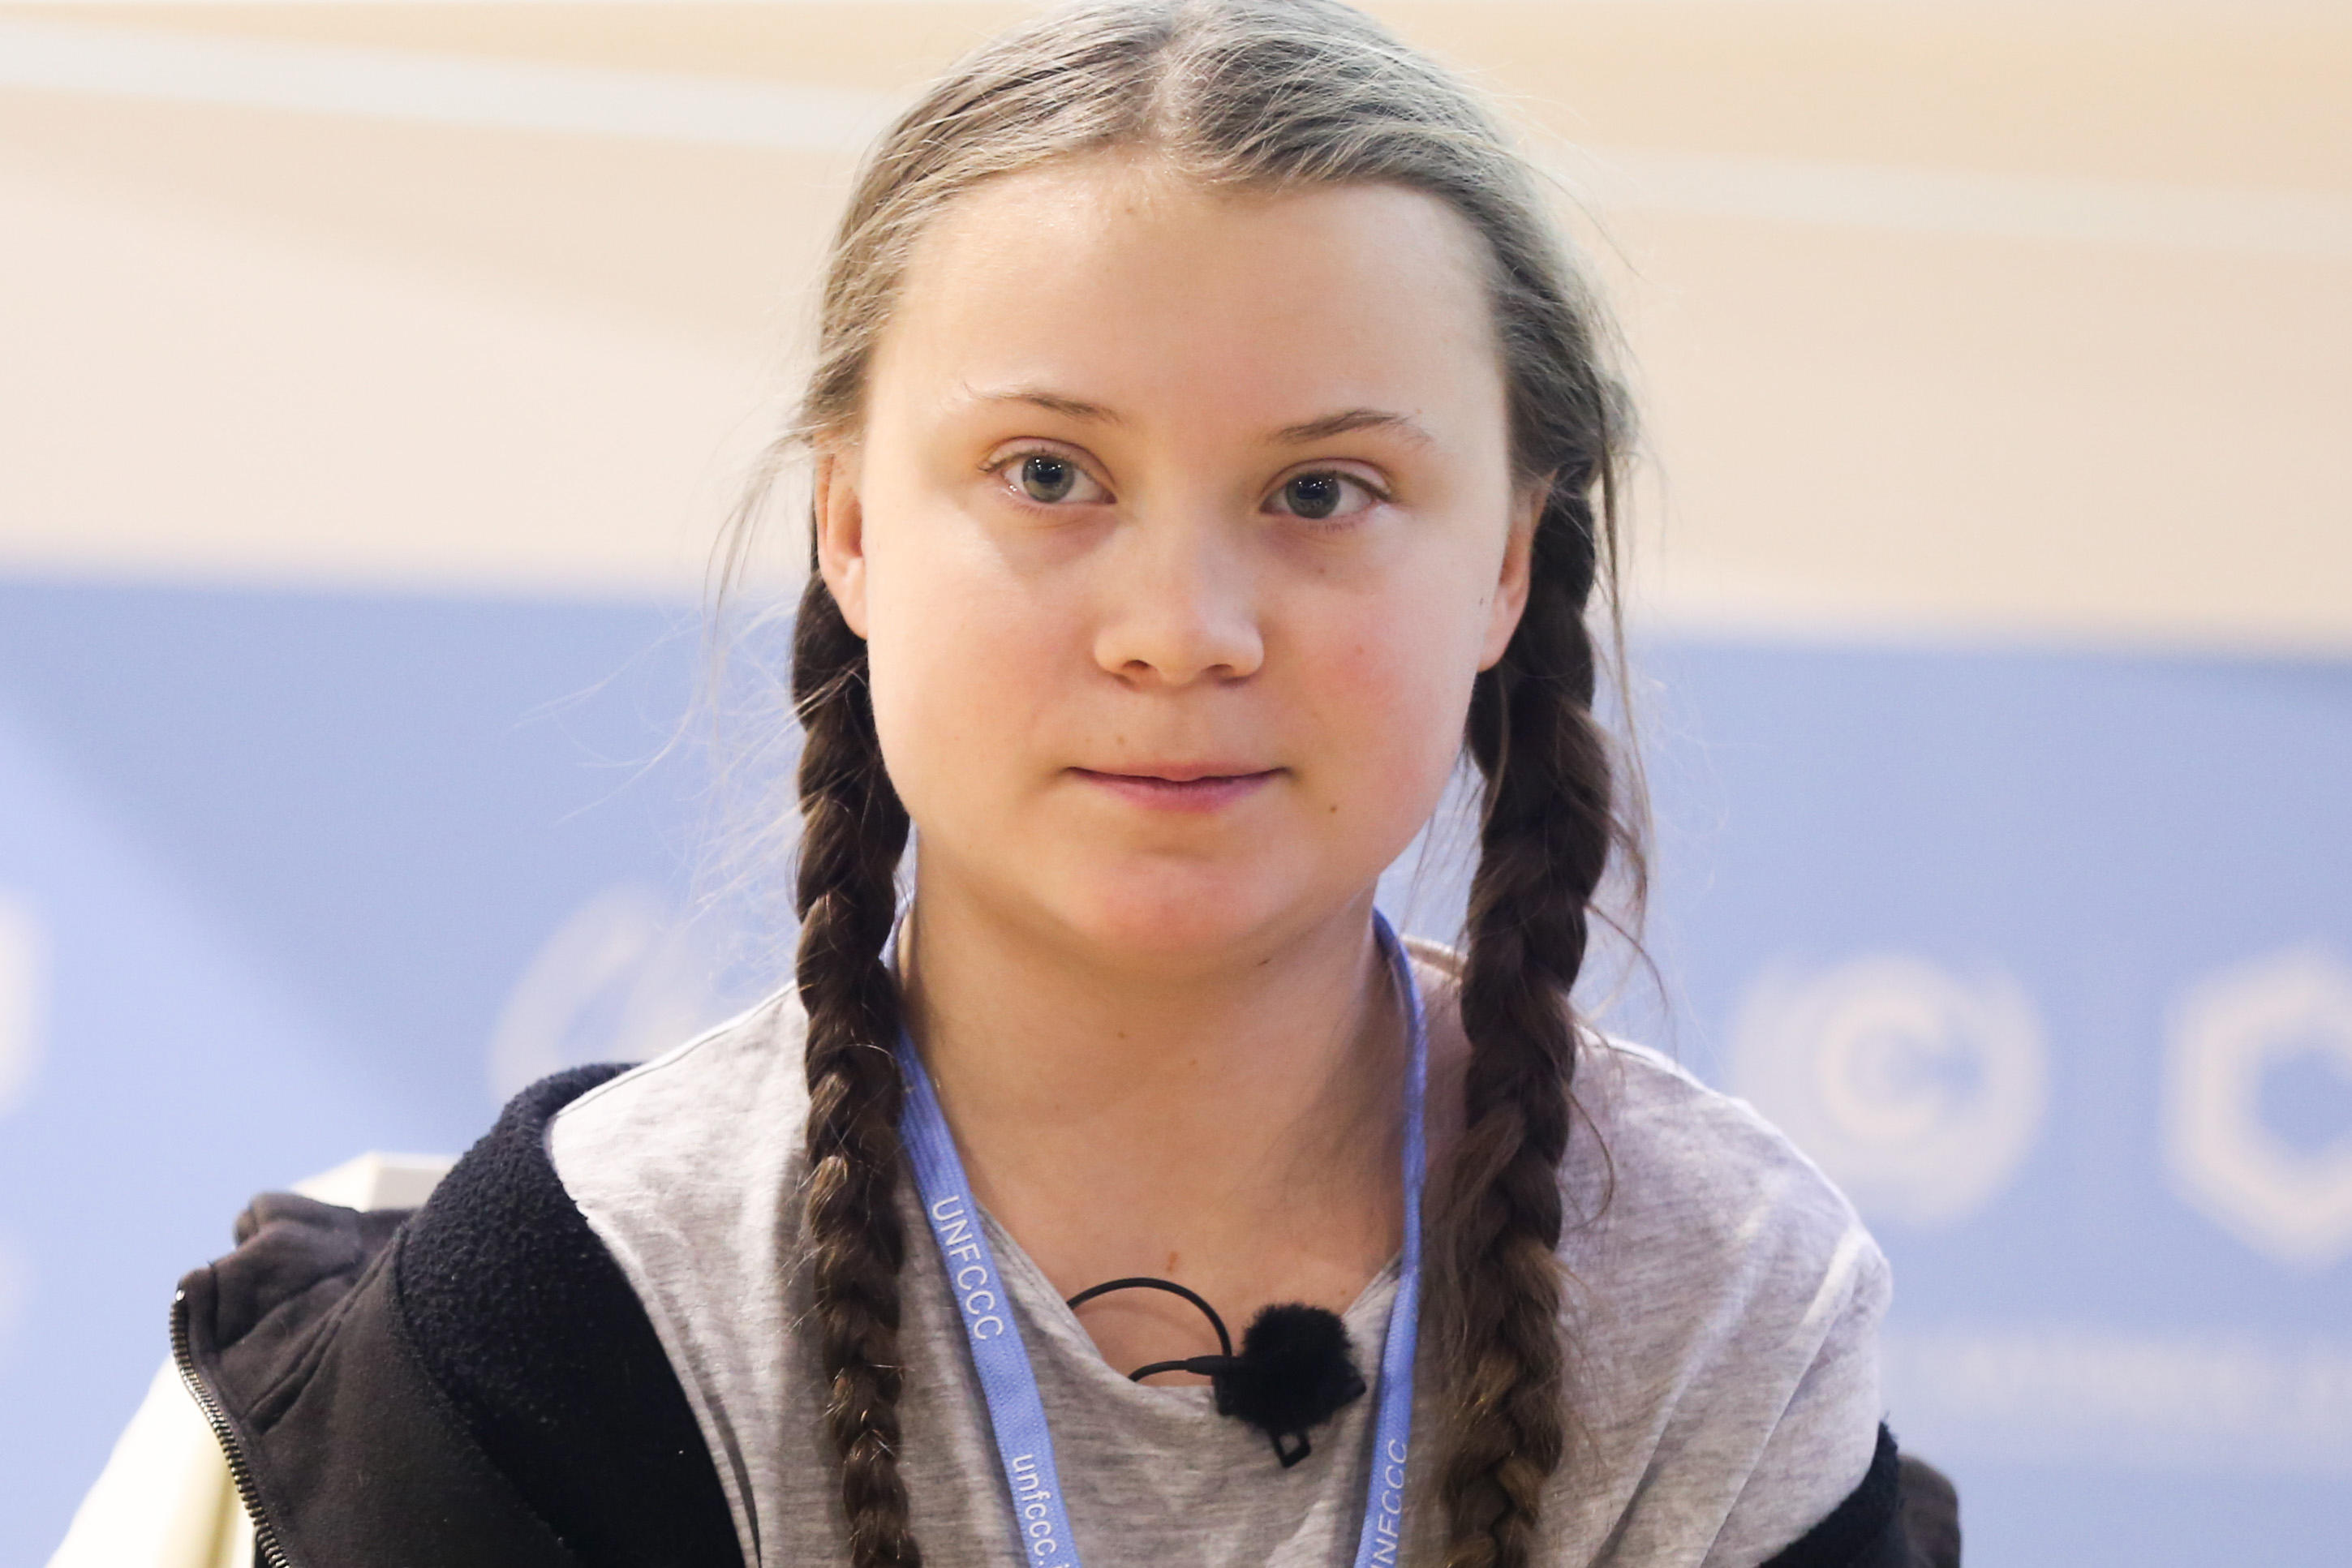 greta thunberg - photo #23